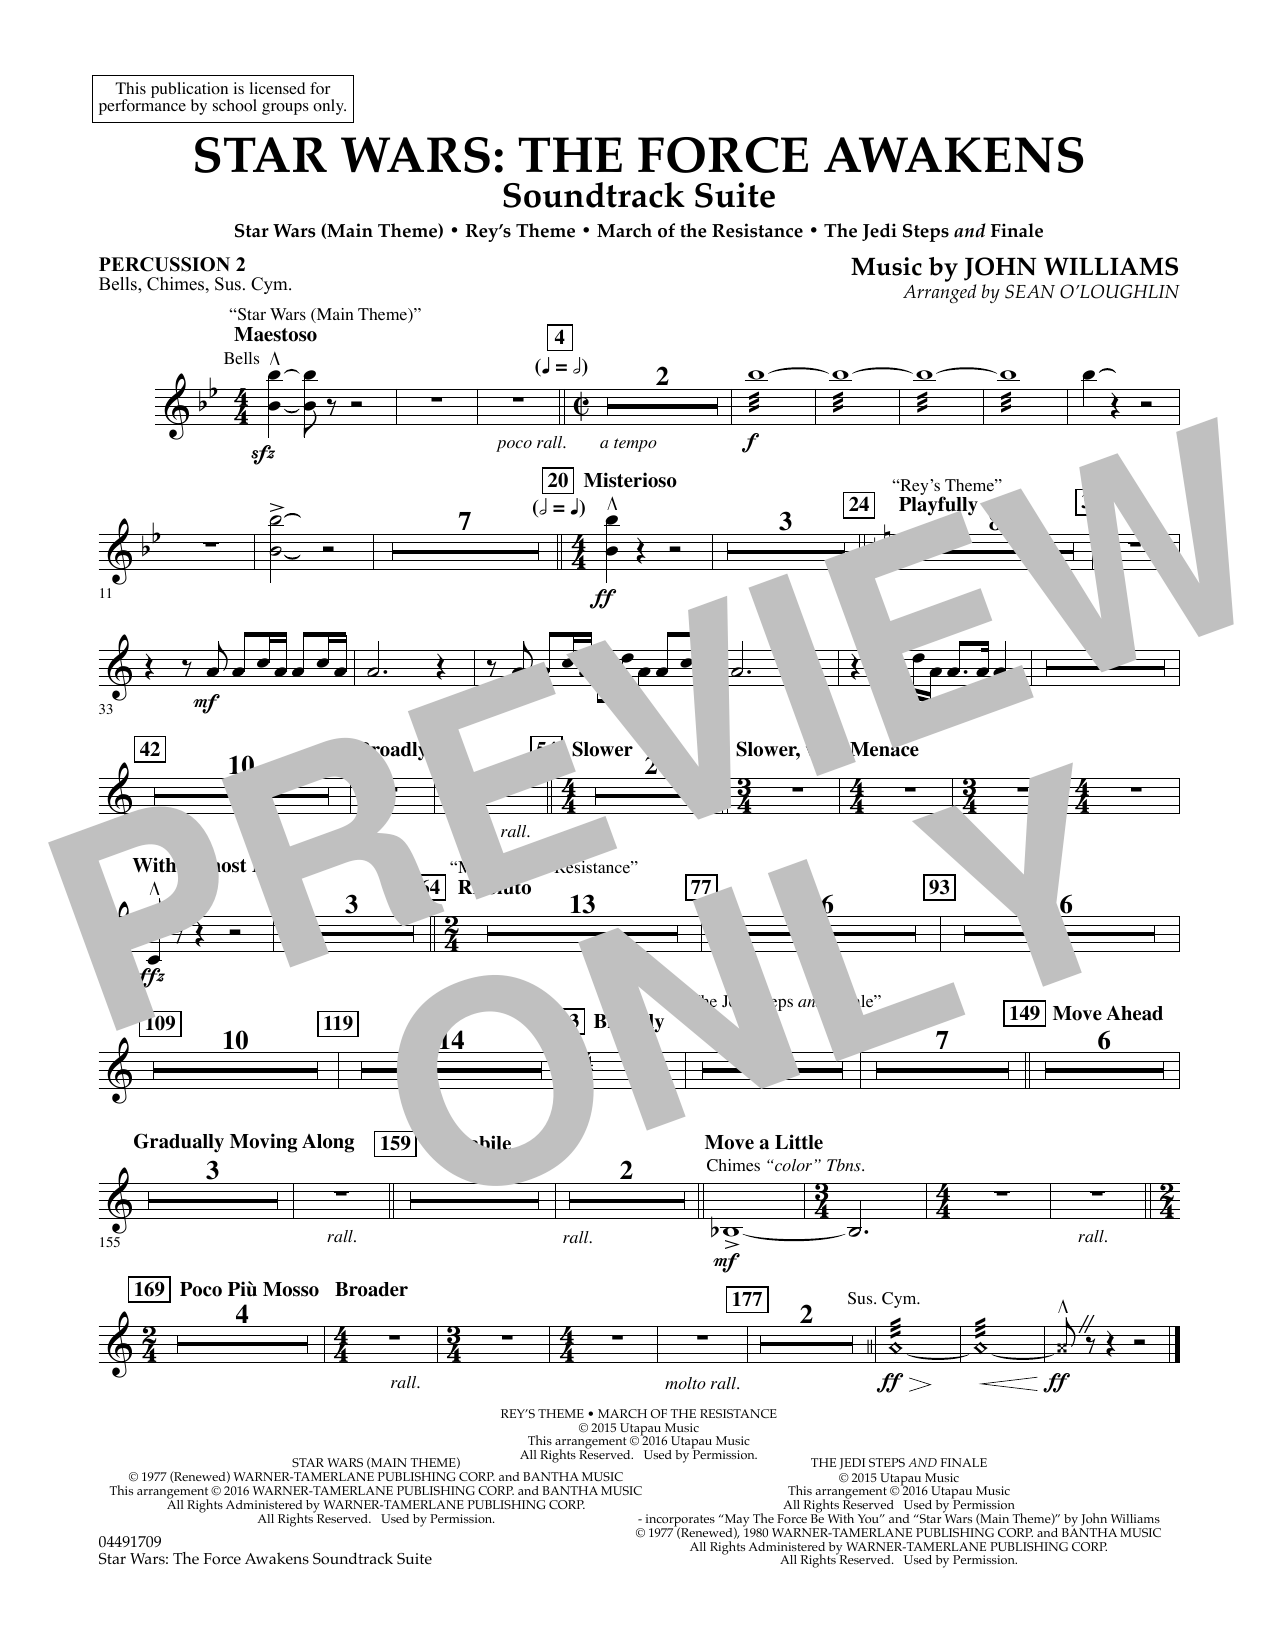 Star Wars: The Force Awakens Soundtrack Suite - Percussion 2 (Full Orchestra)